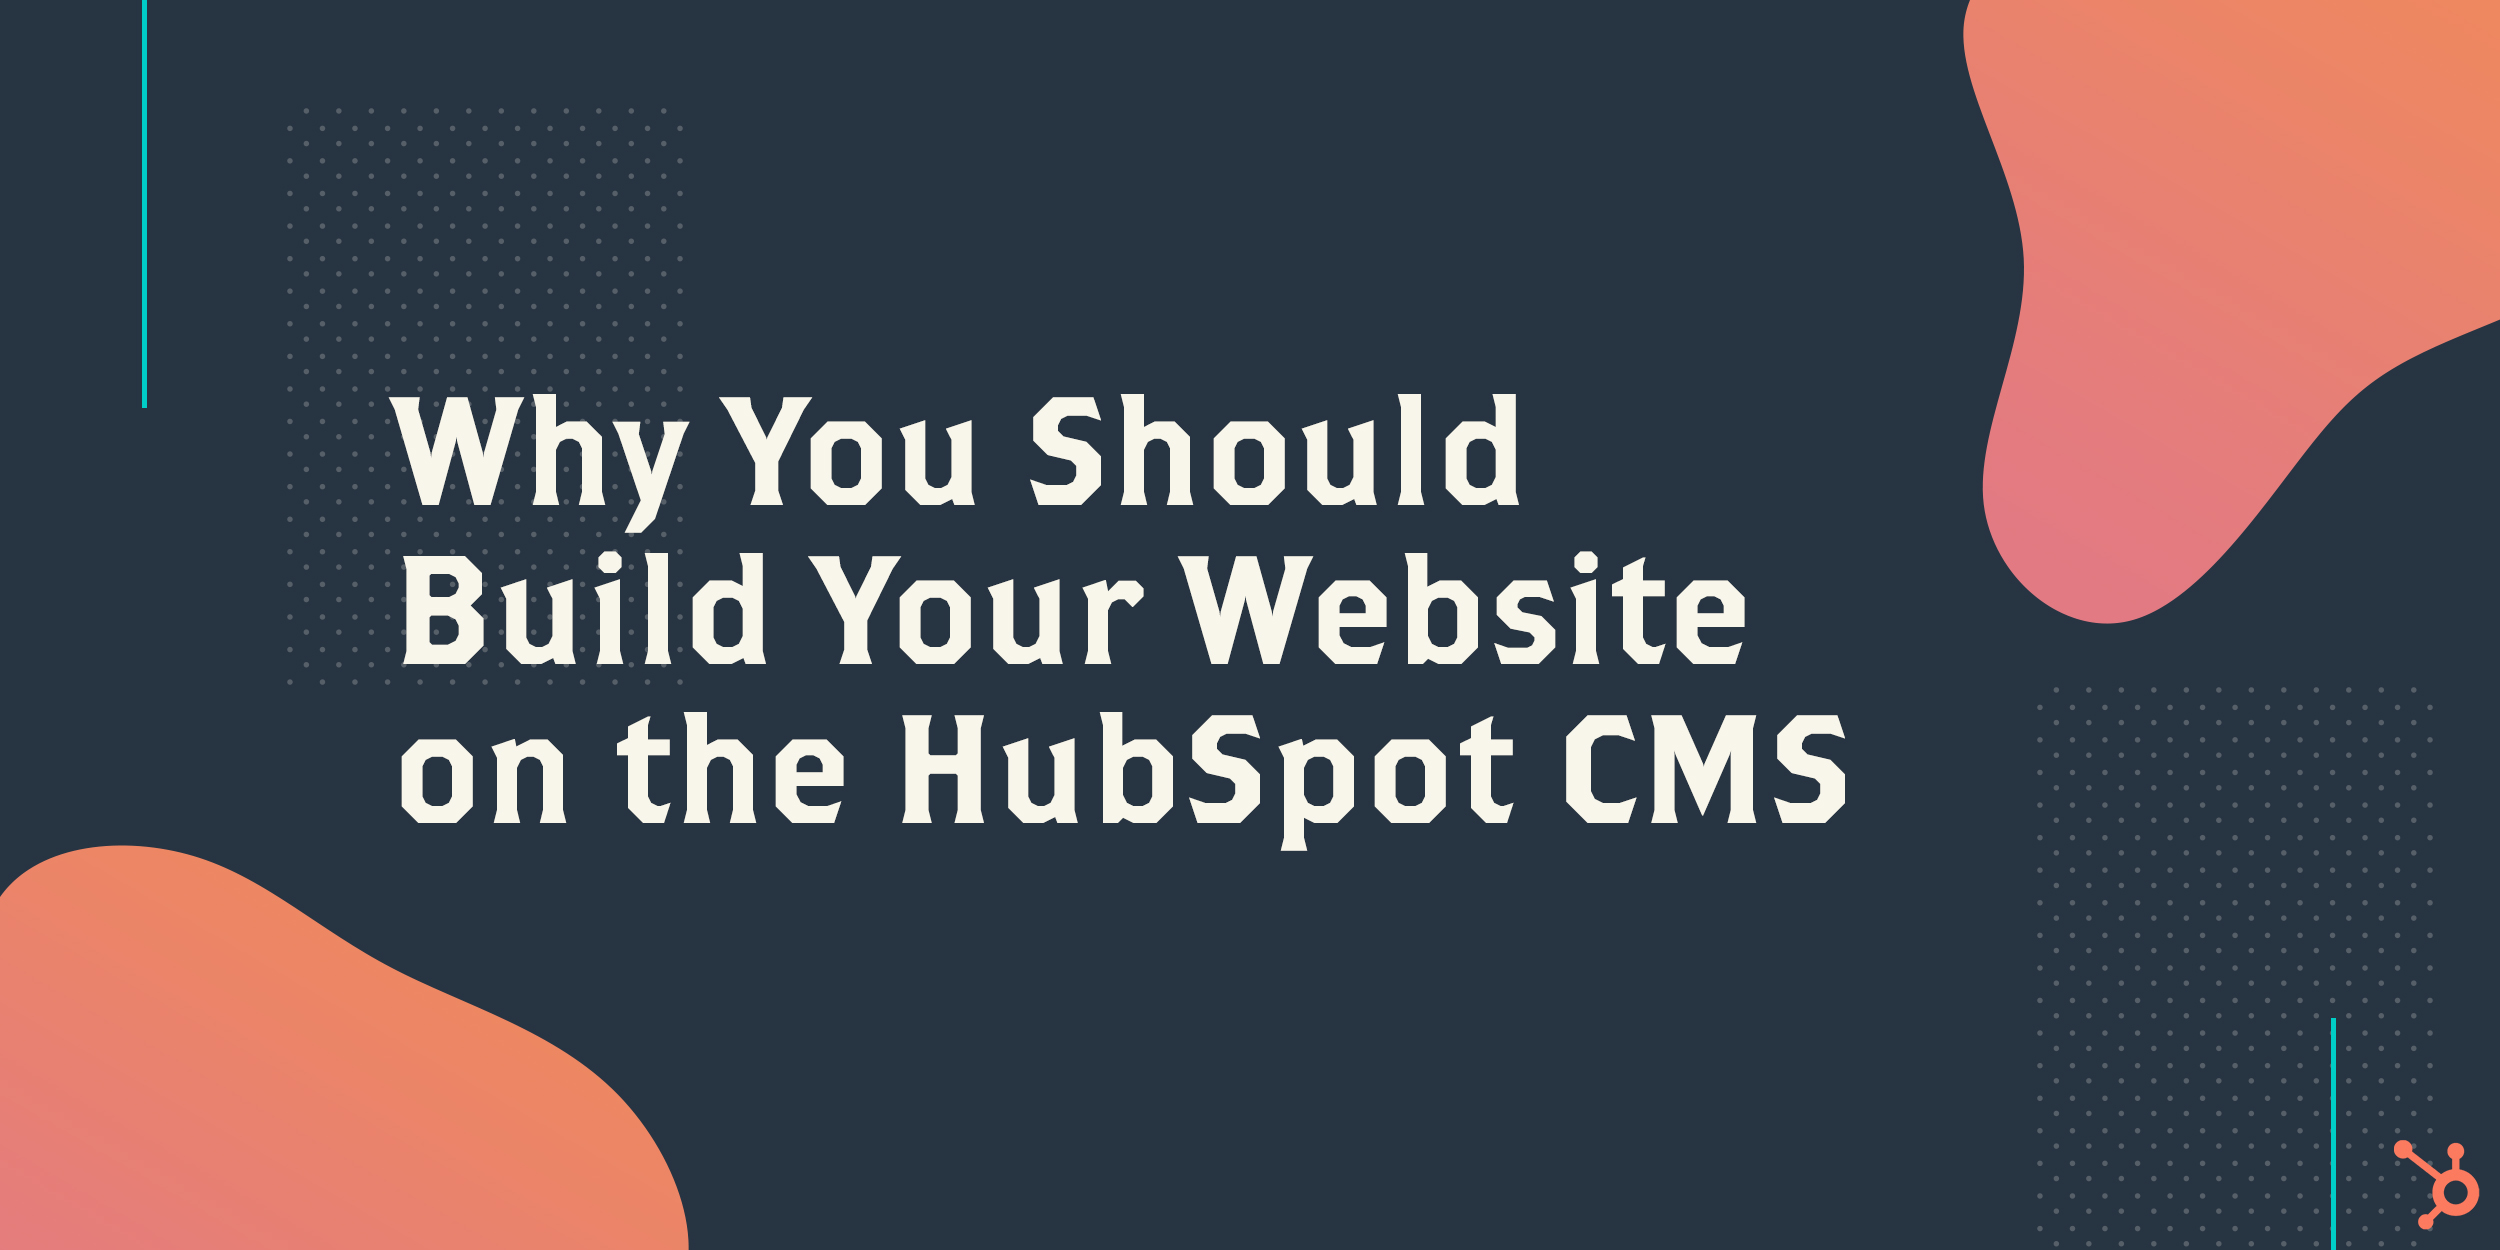 Why You Should Build Your Website on the HubSpot CMS